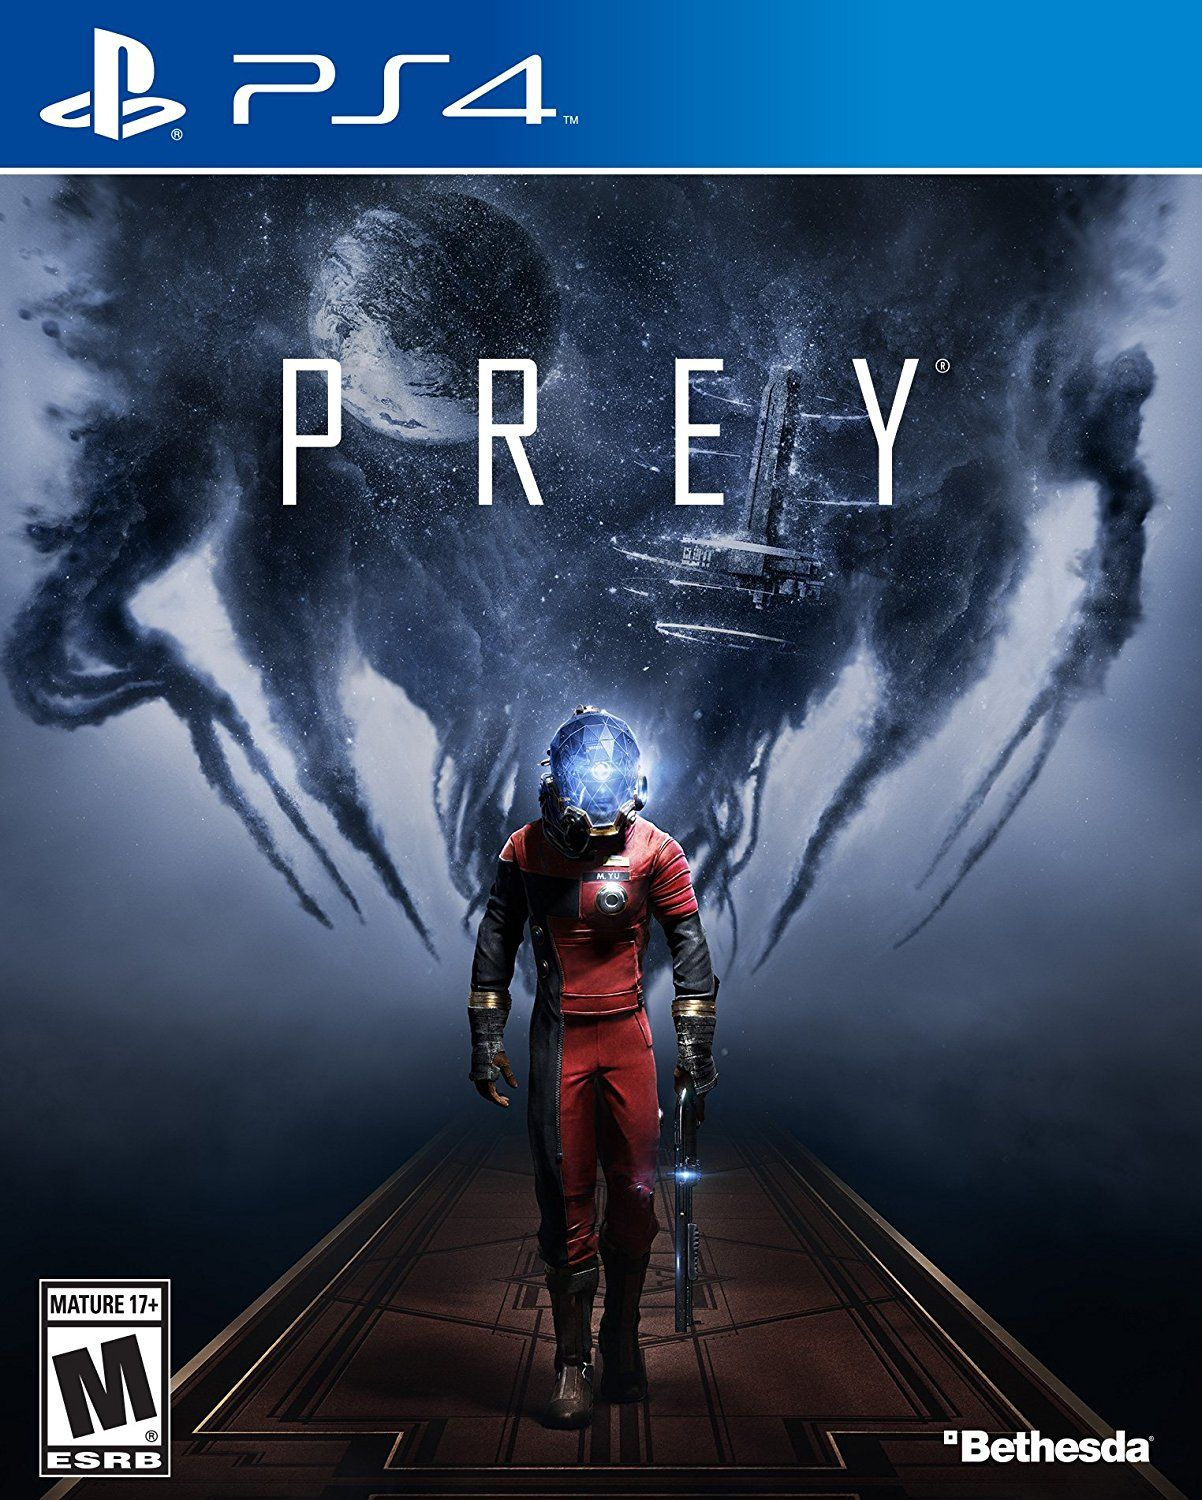 Prey (2017) Game Cover PS4 | Video Games | Ps4 games, Xbox one games